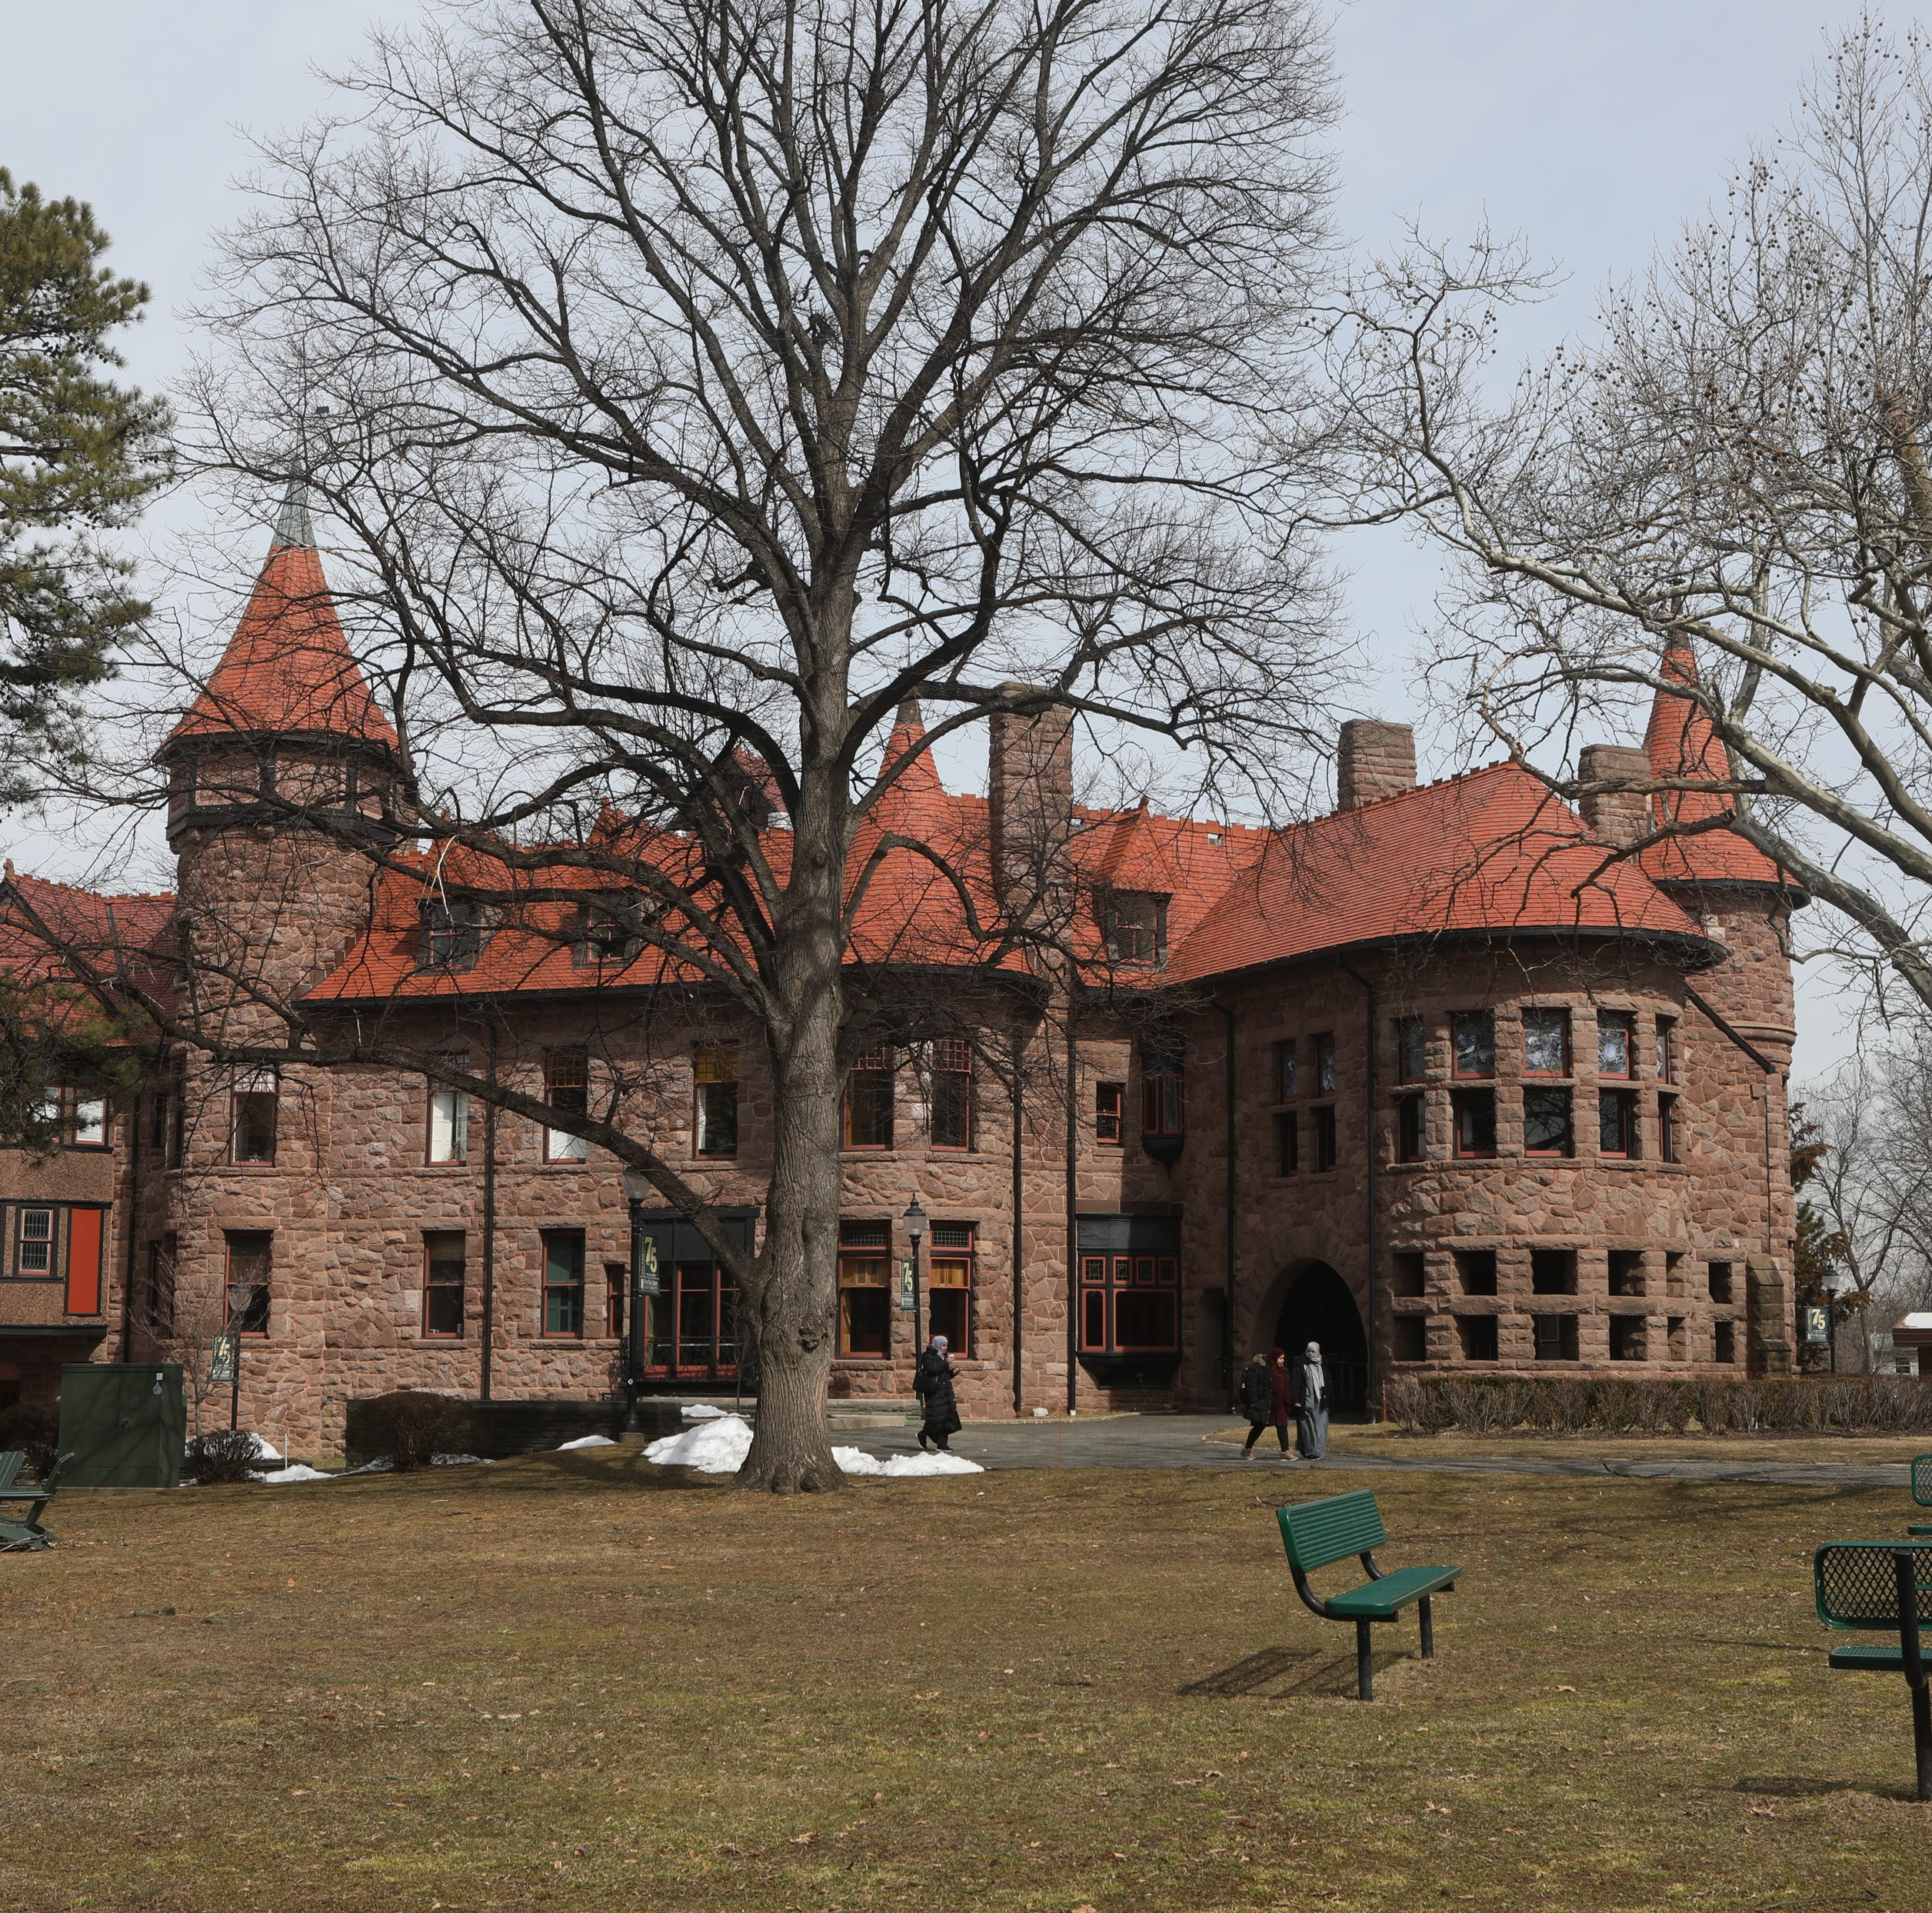 Felician University getting pushback over plan to build gym near Iviswold Castle